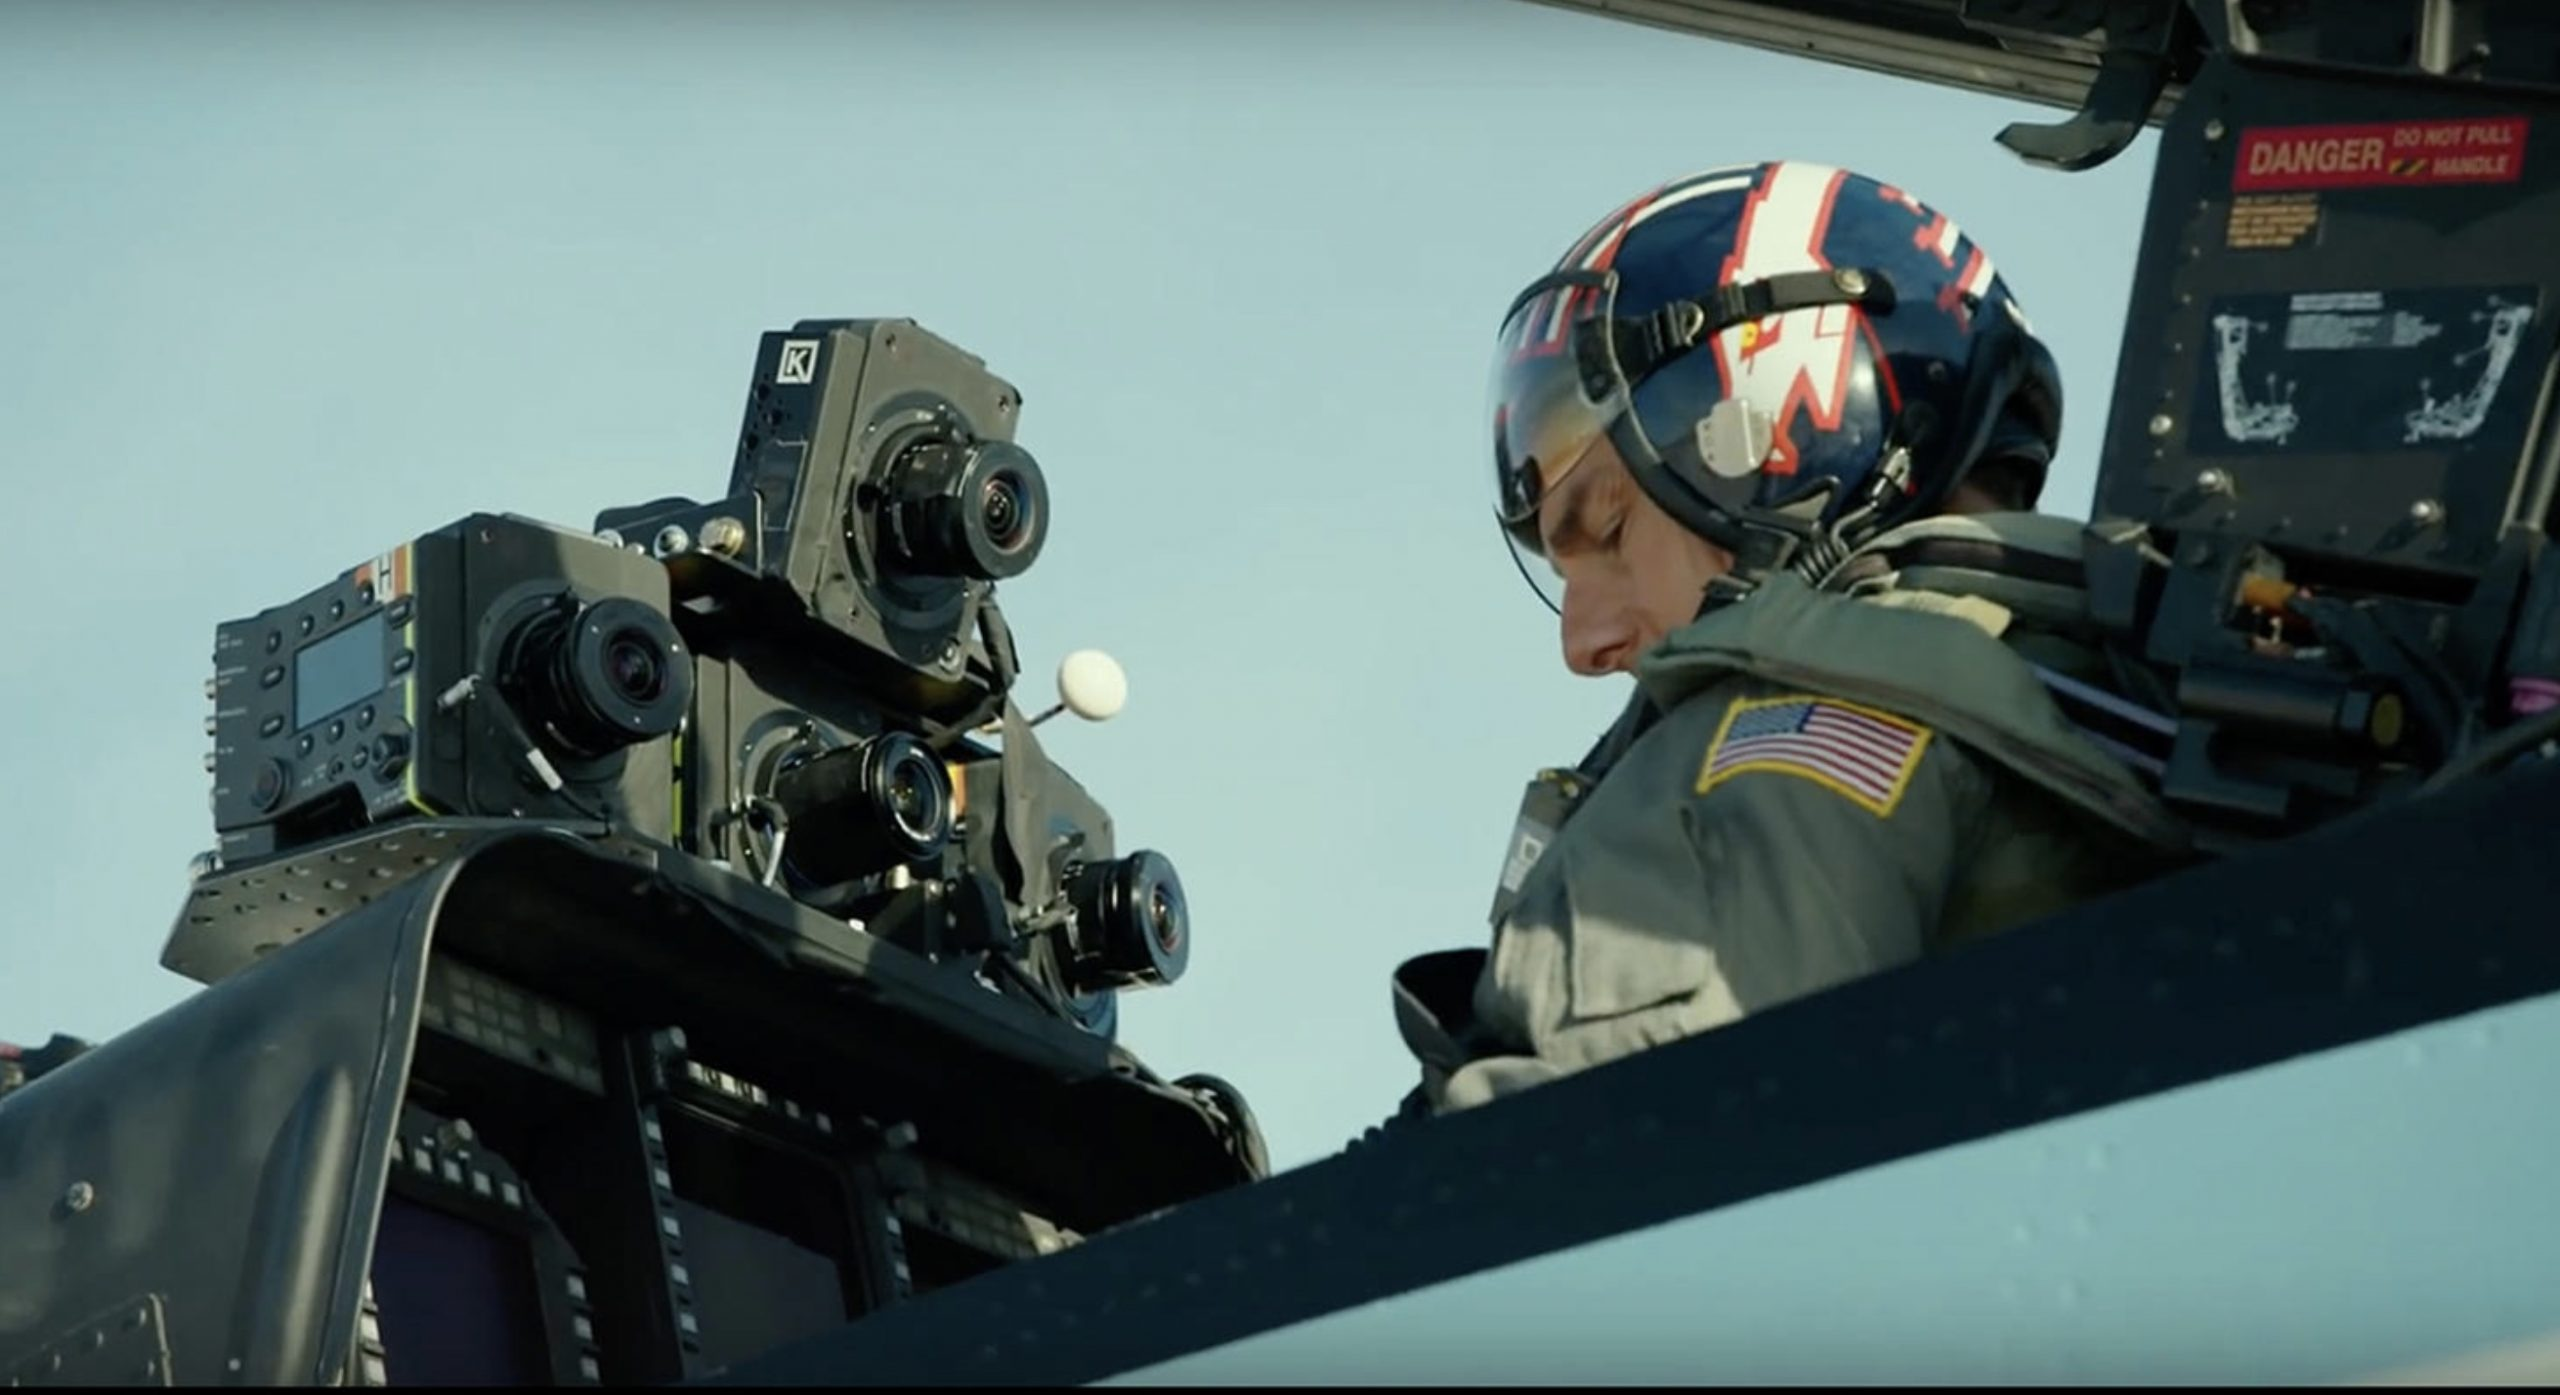 Top Gun 2: Maverick Release Date, Plot and All You Need To Know